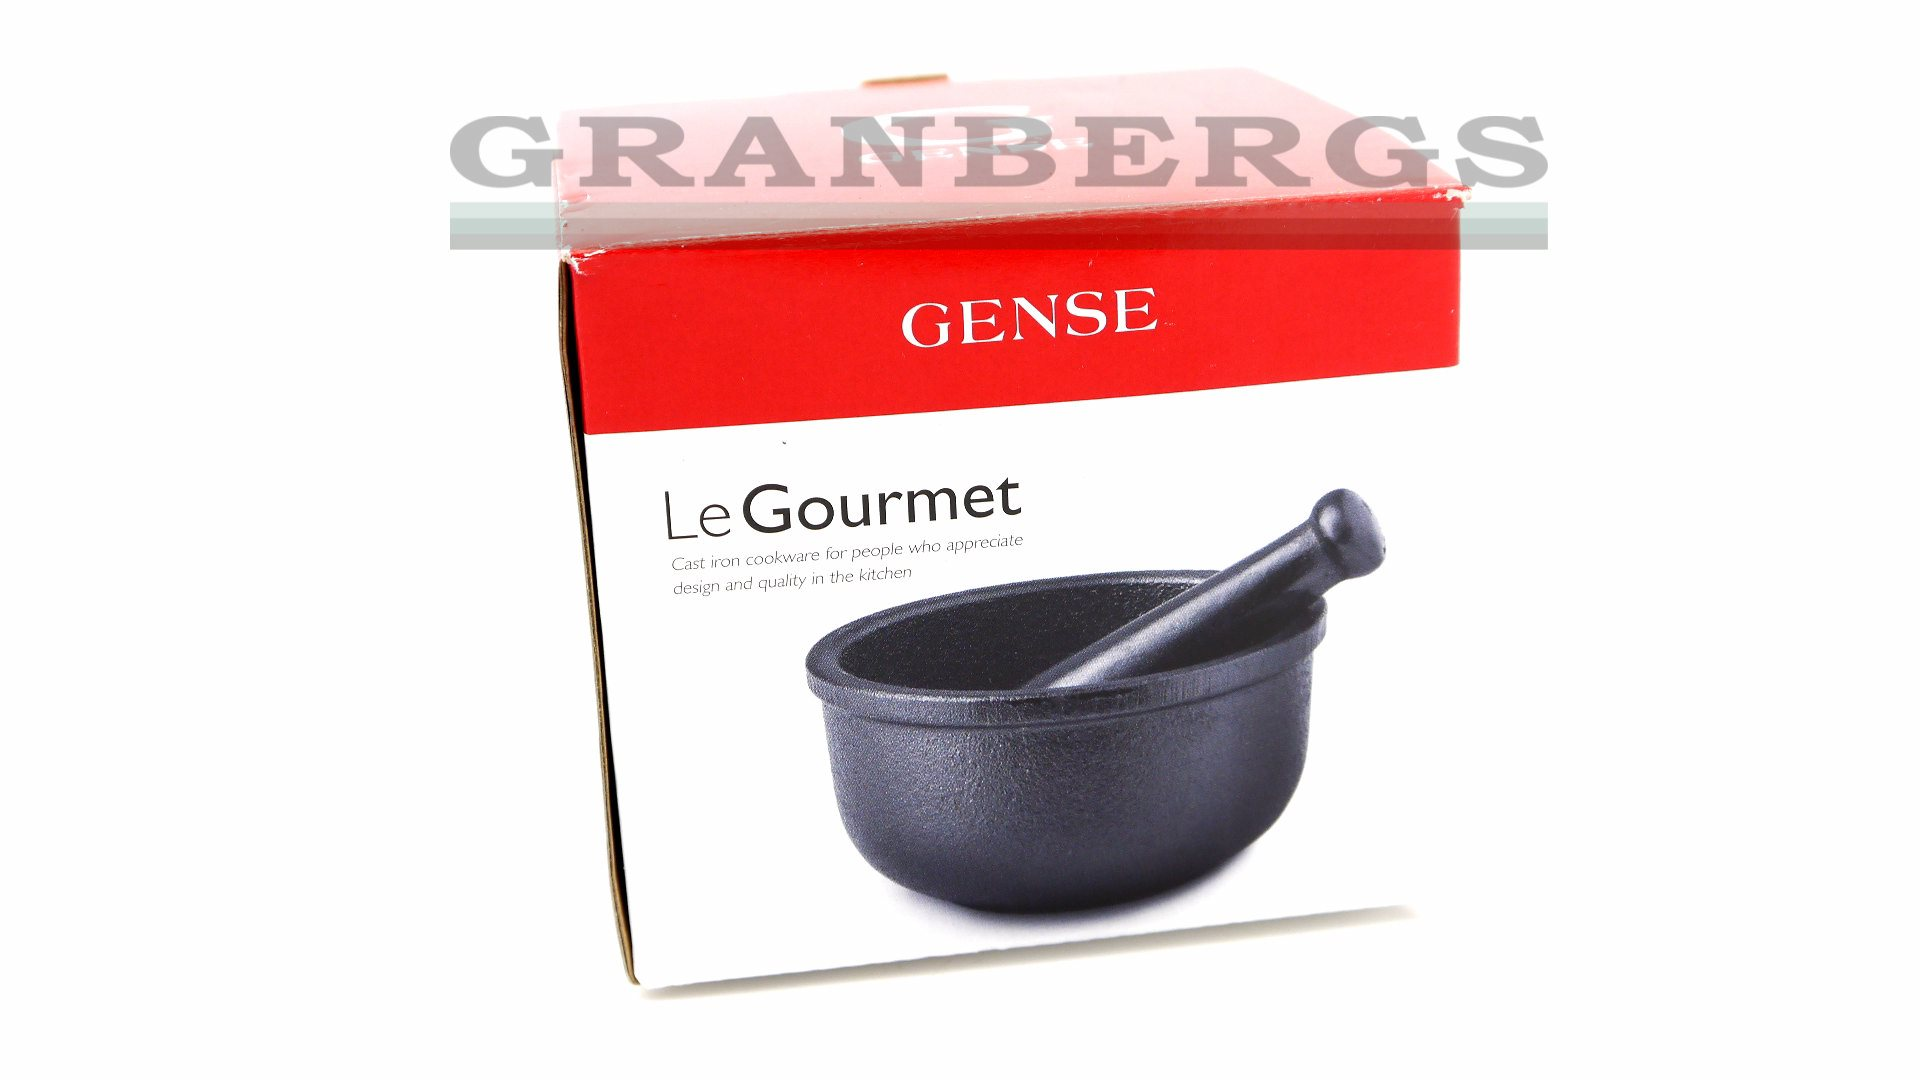 granbergs gense le gourmet spice mortar pestle cast iron small